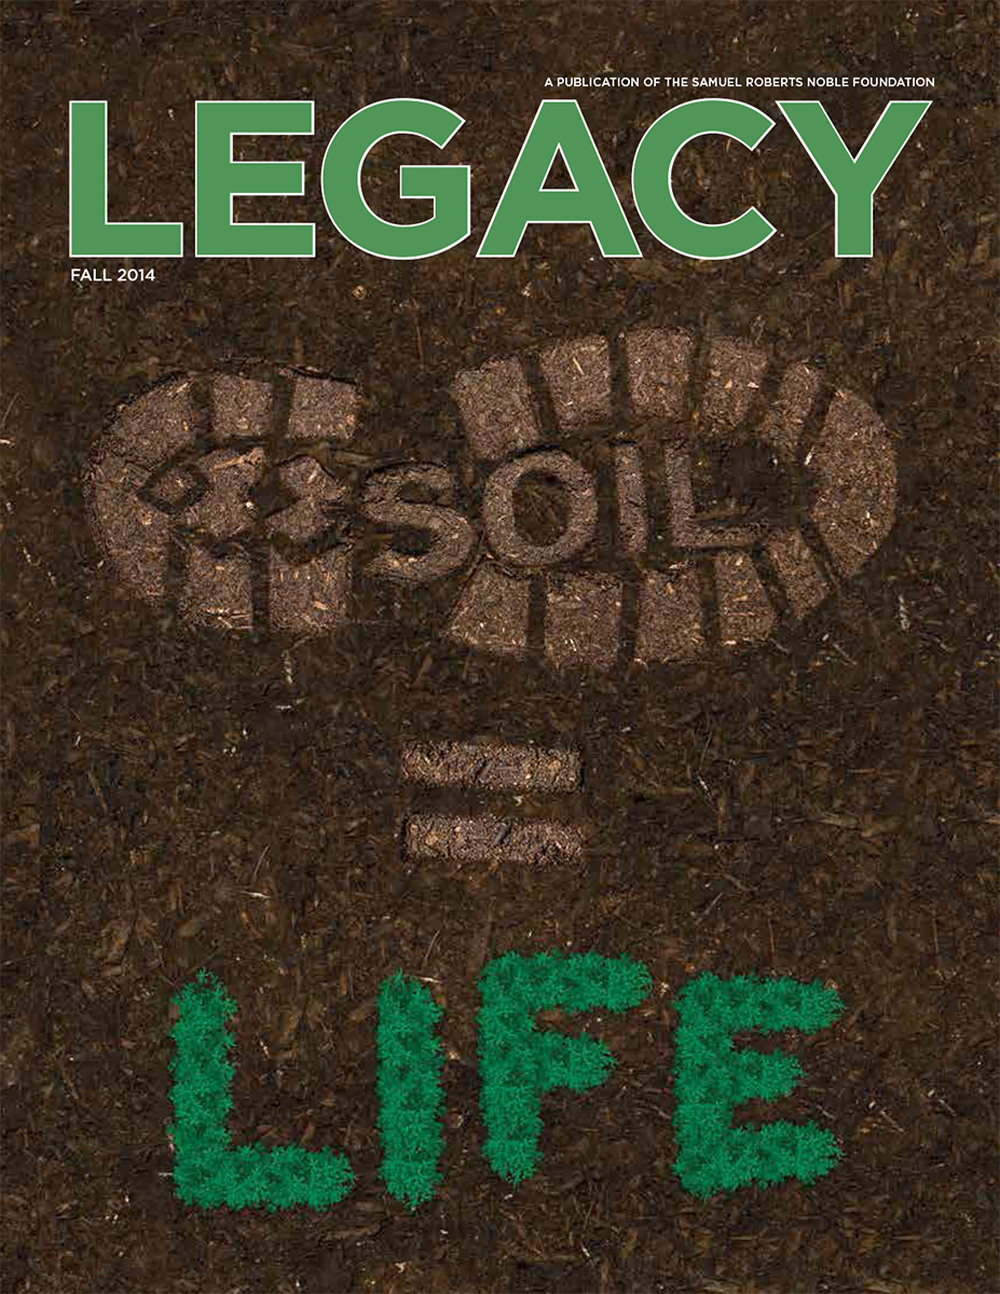 Legacy_SoilEqualsLifeCover